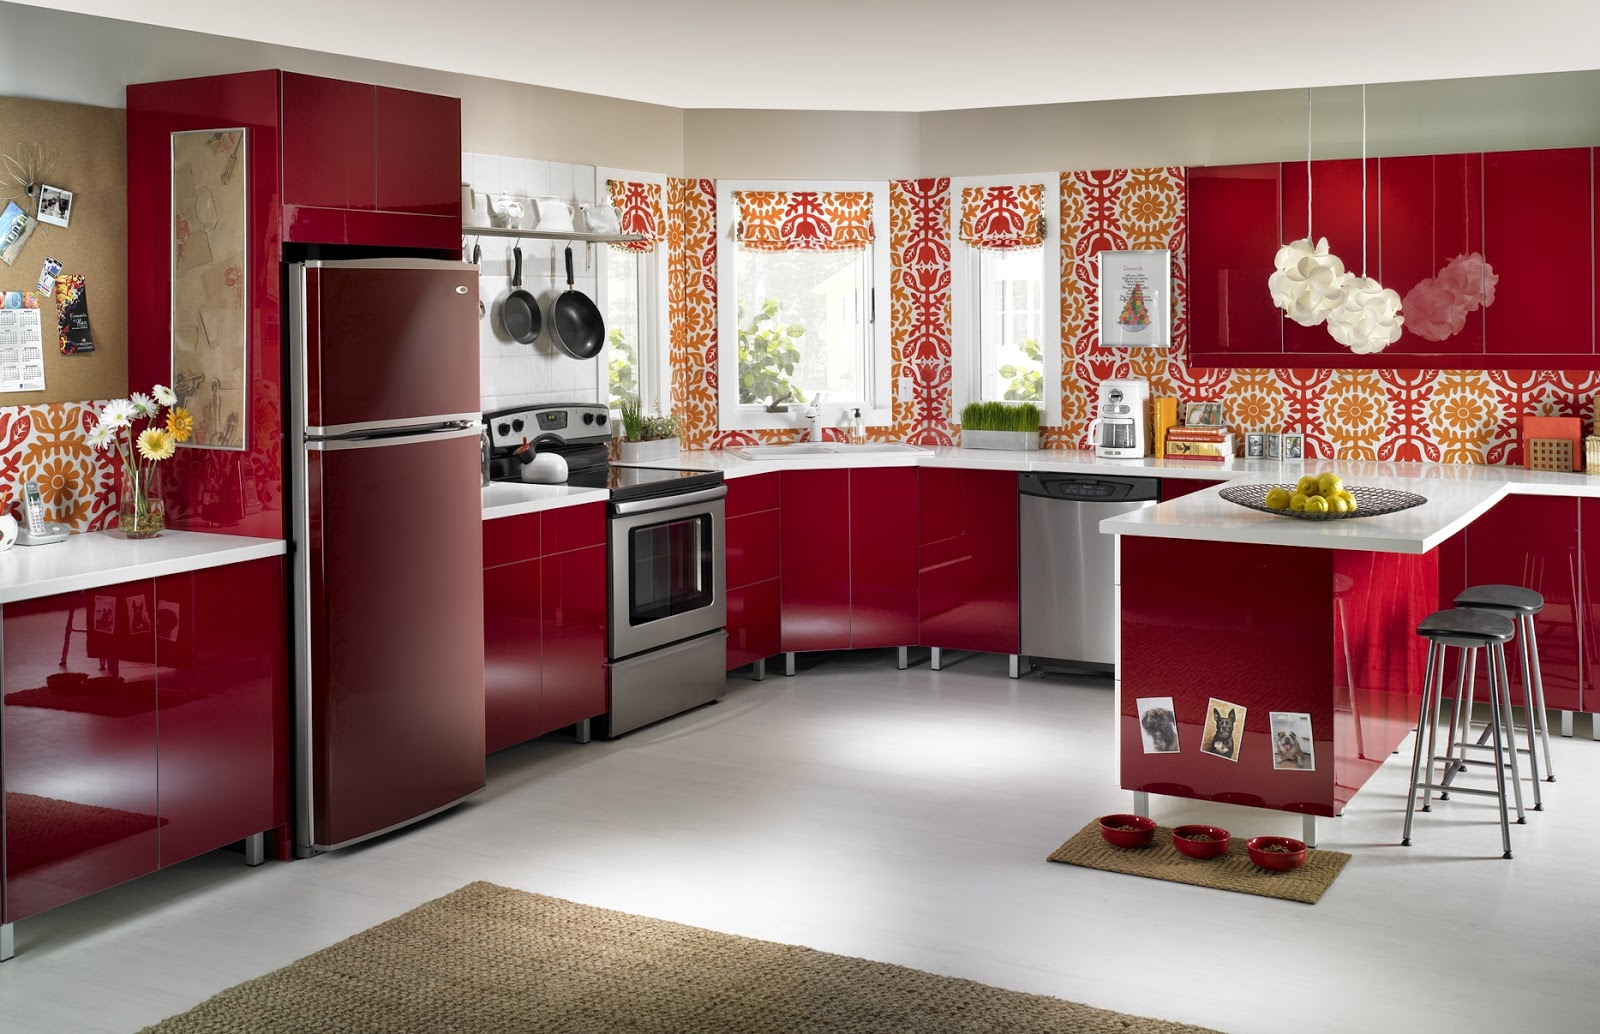 Houston Kitchen Appliances And Custom Cabinetry In Texas